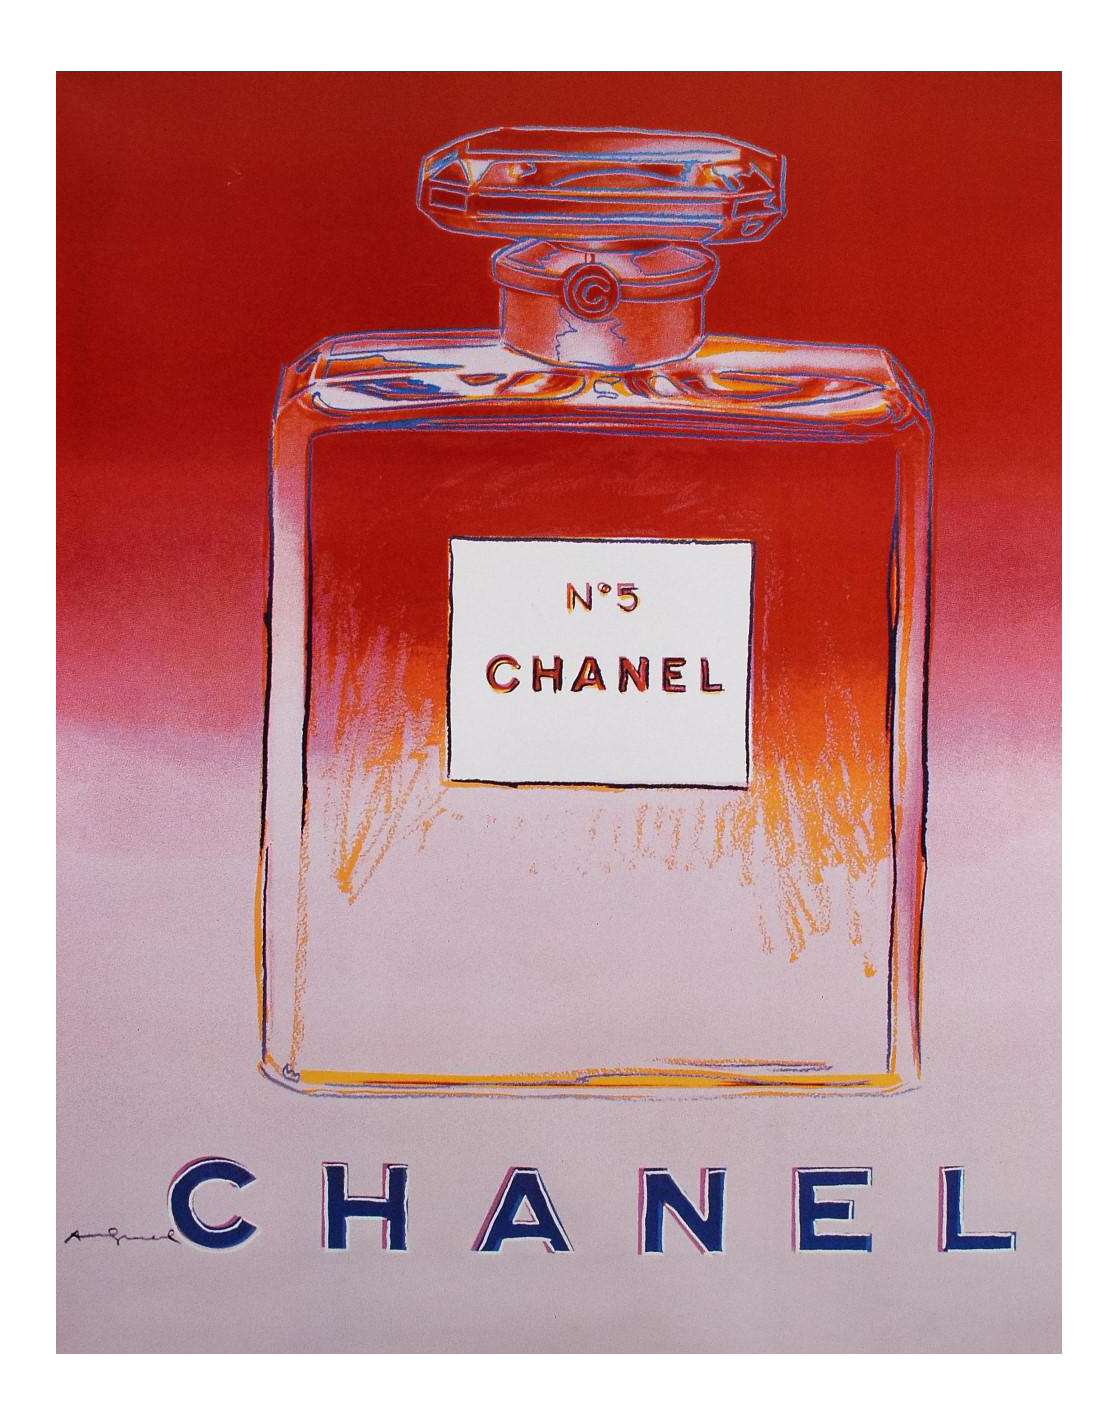 Chanel drawing poster. Image result for no